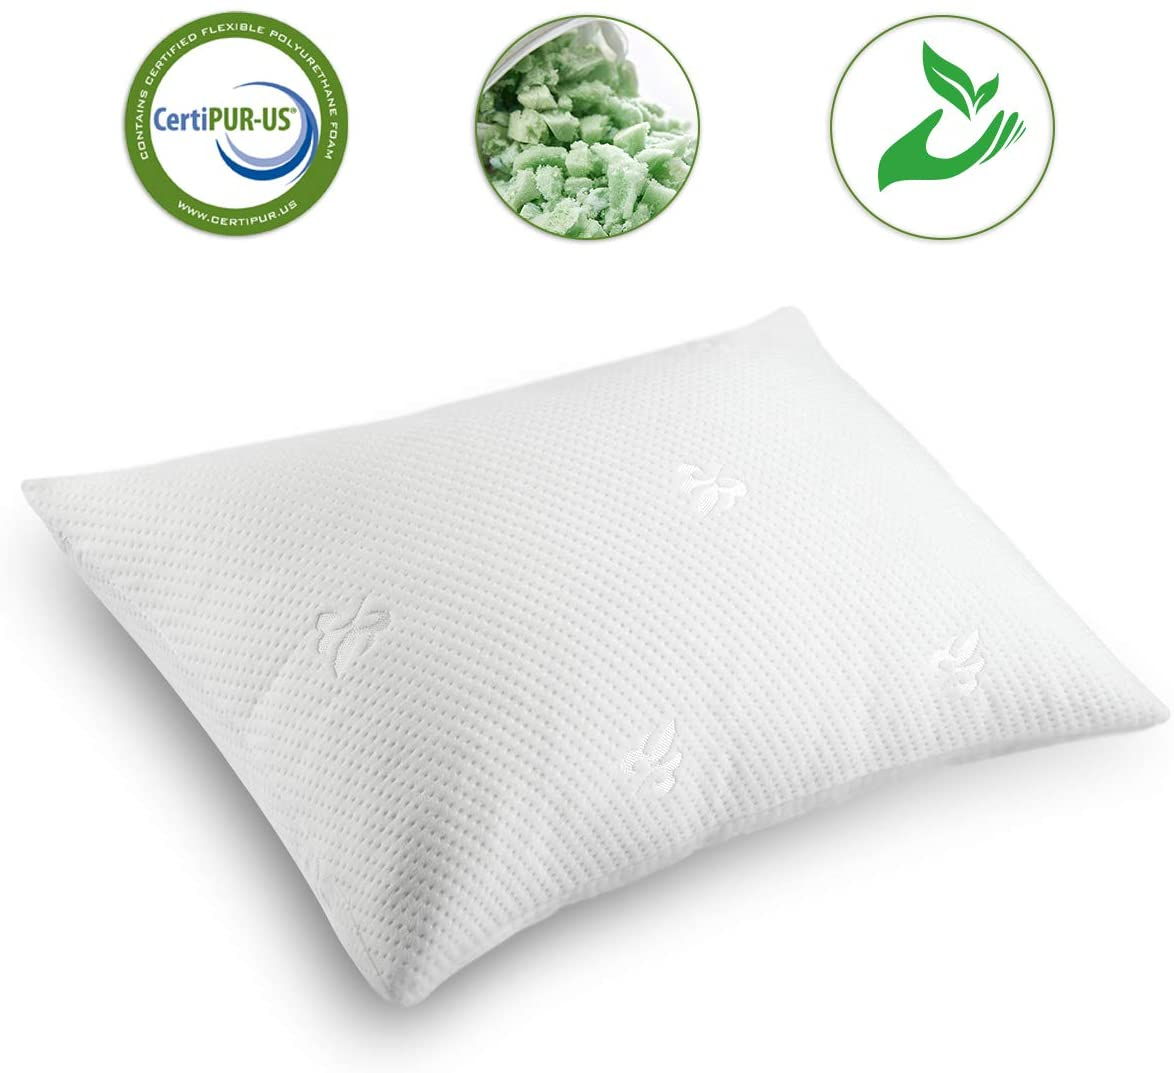 Cooling Bed Pillows for Sleeping Shredded Memory Foam Pillow Standard(20x26) with Washable Pillow Cover,Great Support and Fluffy